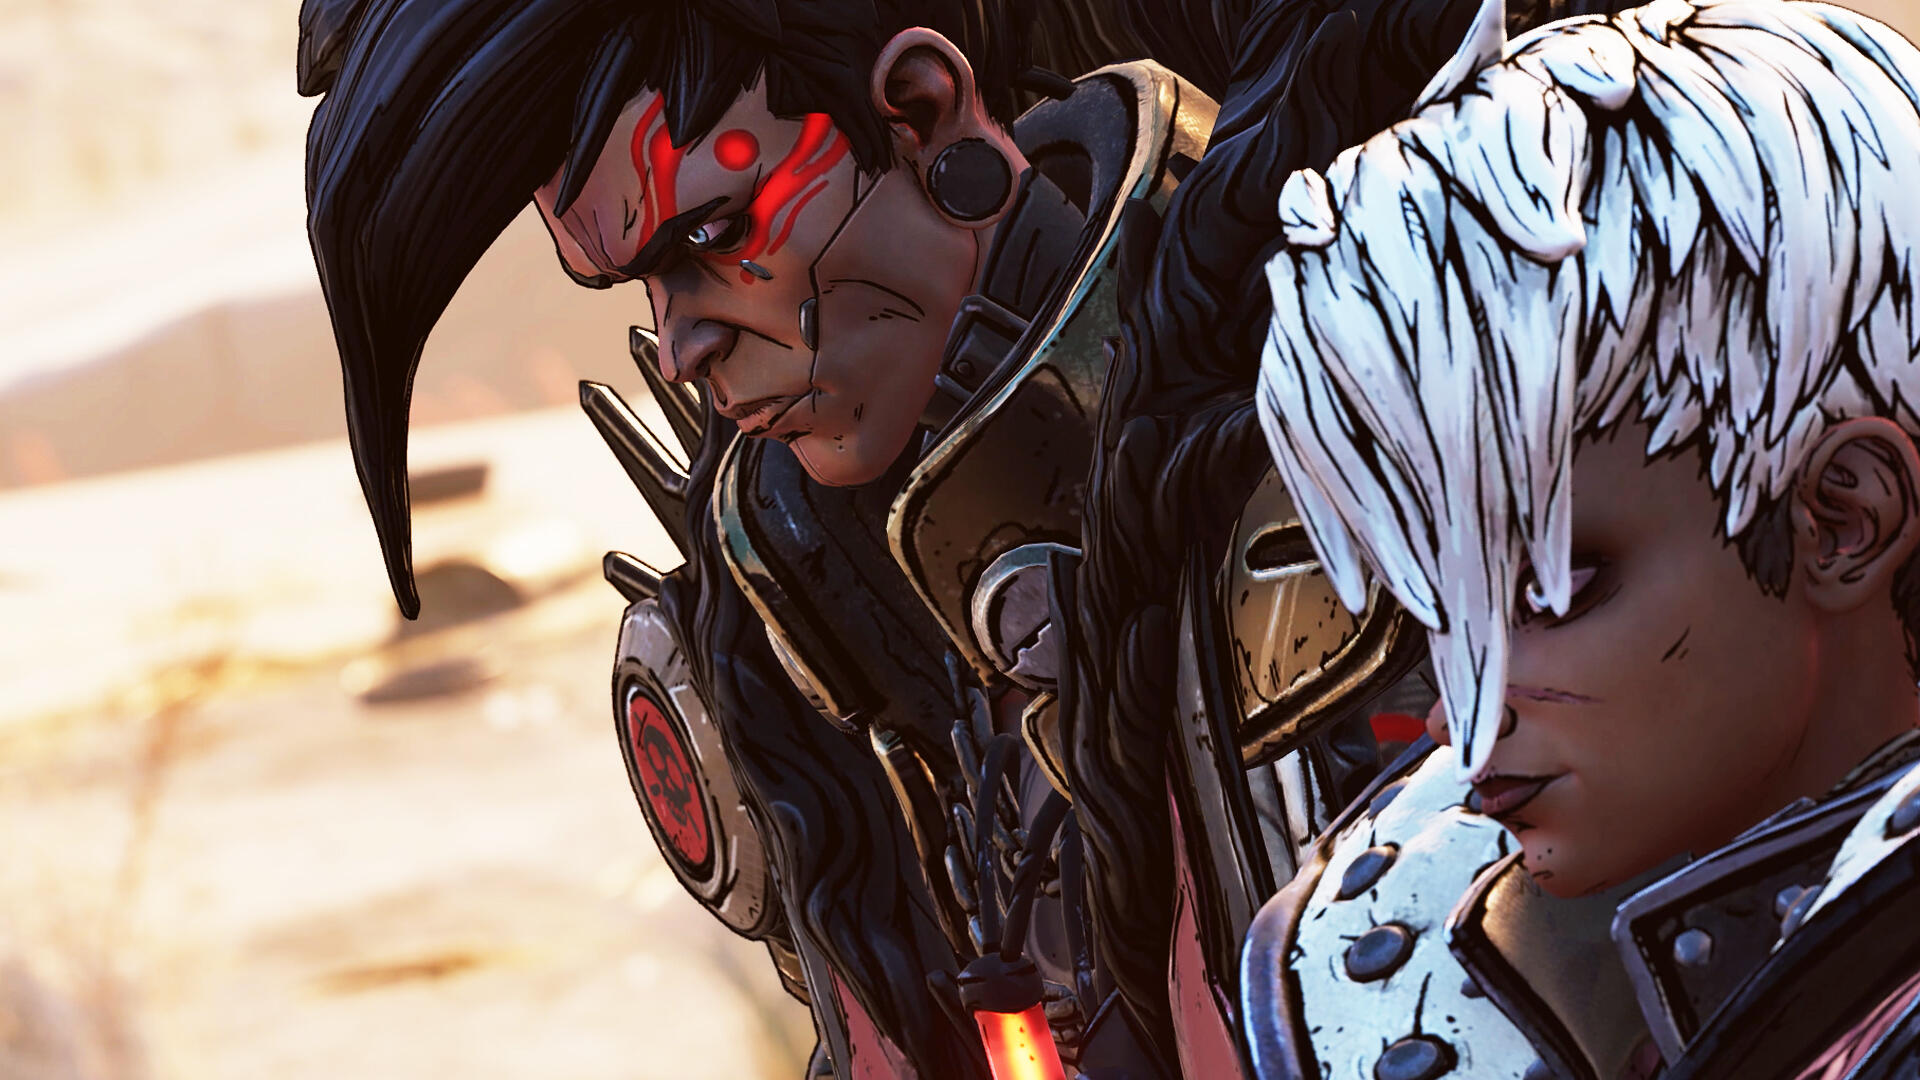 Deleted Borderlands 3 Tweet Suggests September Release Date [Update]